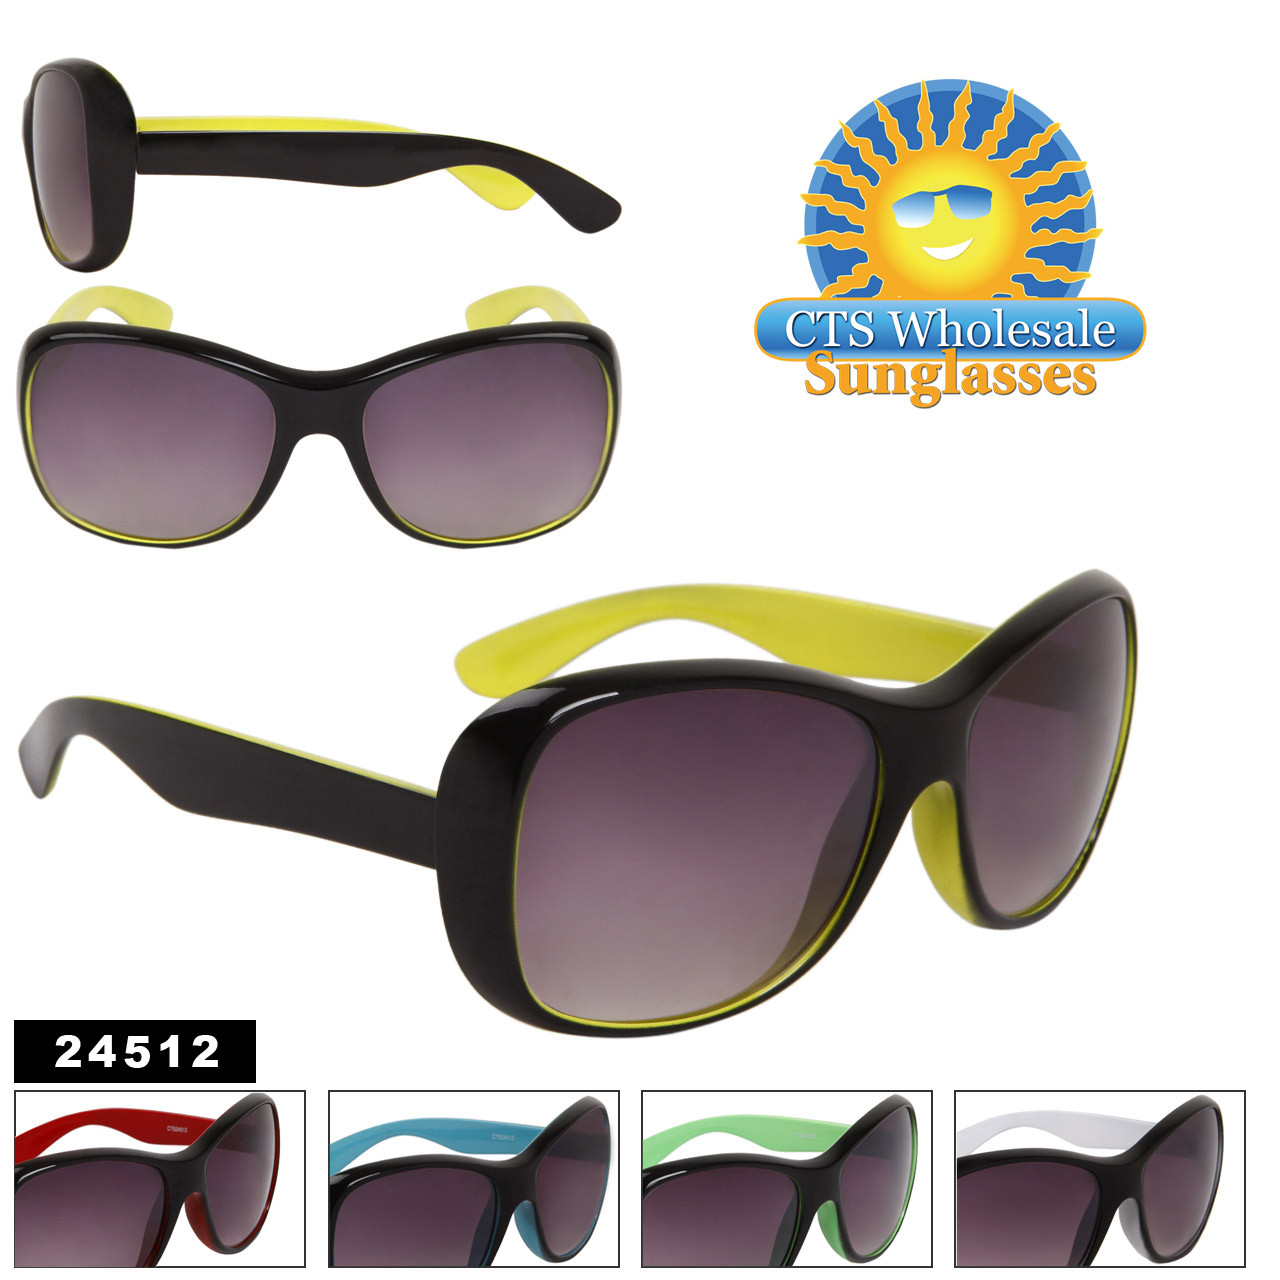 Fashion Sunglasses 24512 (Assorted Colors) (12 pcs.)